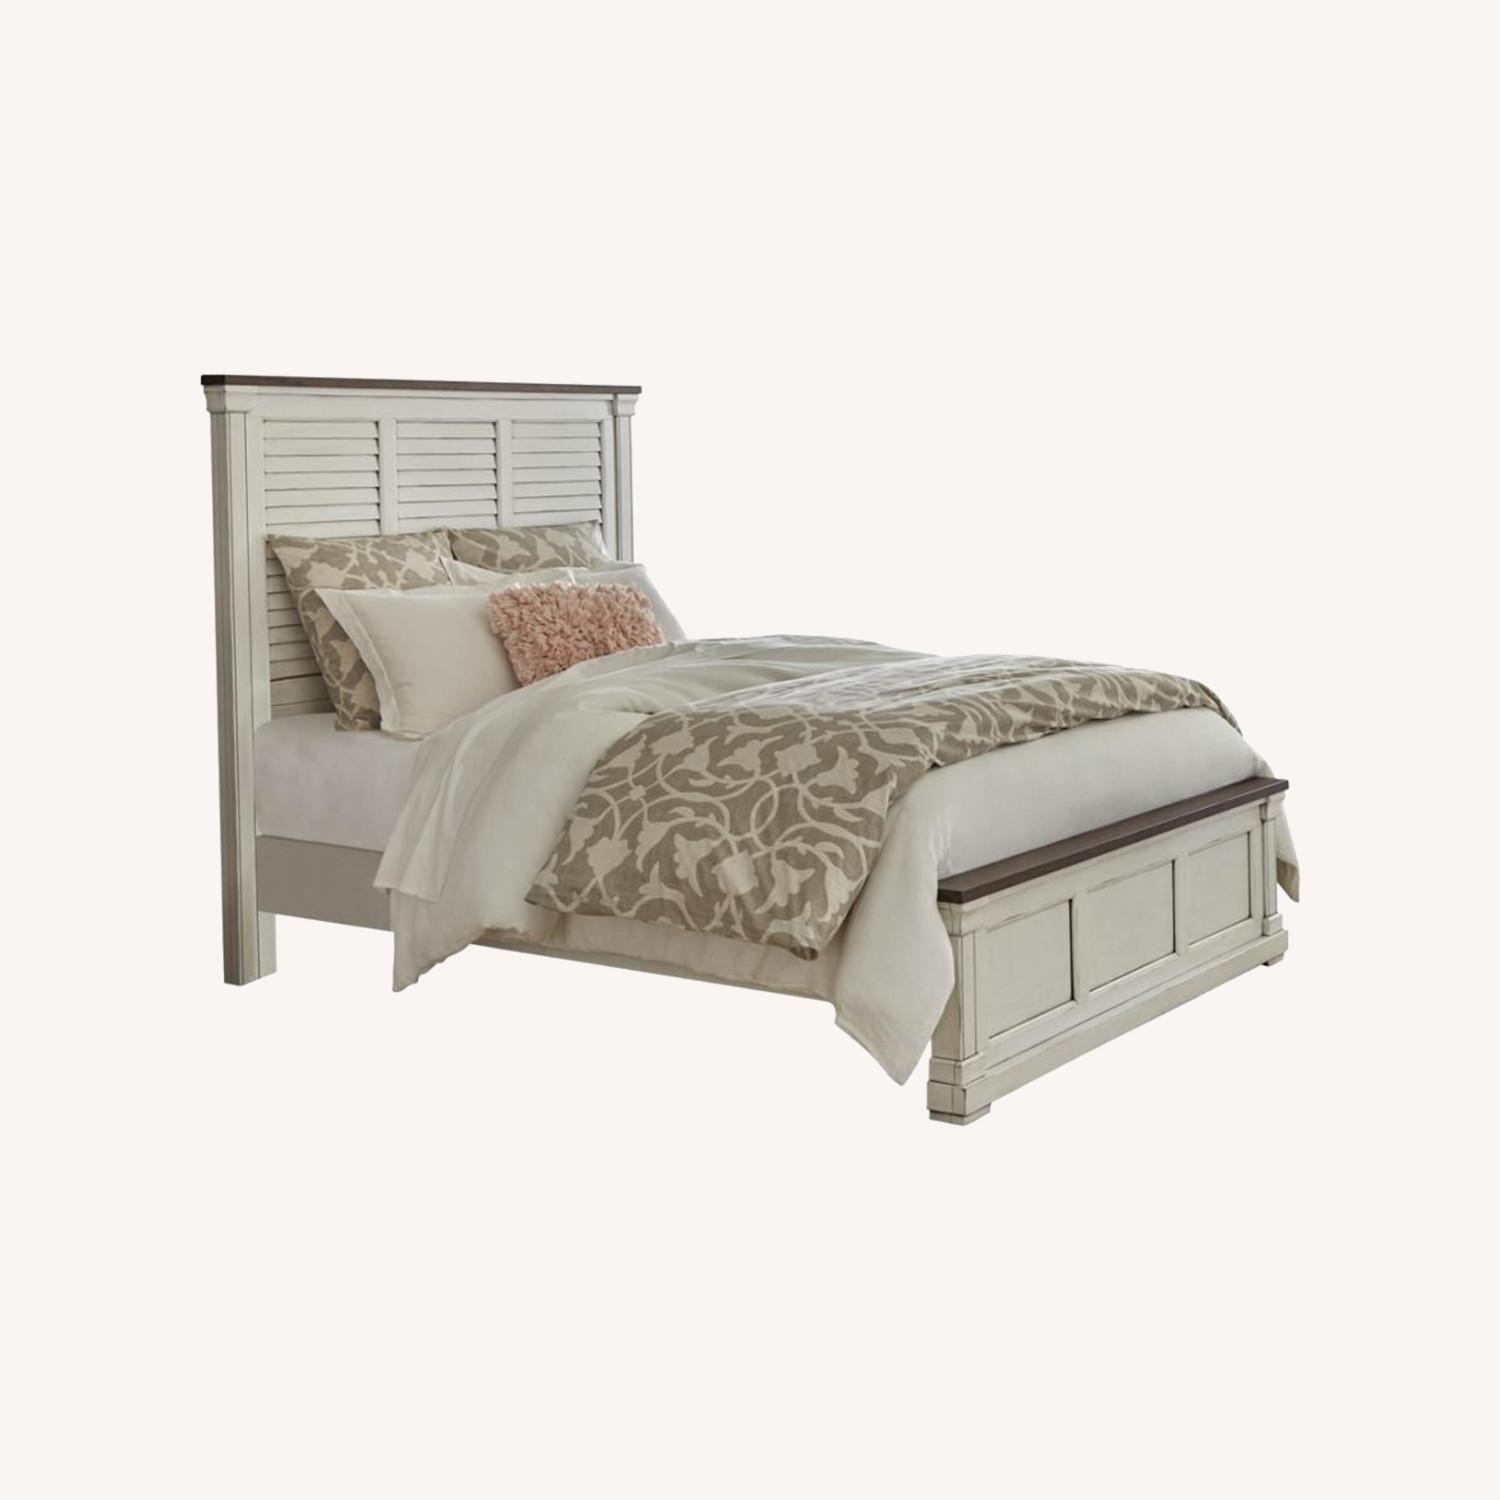 Farmhouse Style King Bed In Dark Rum Finish - image-3